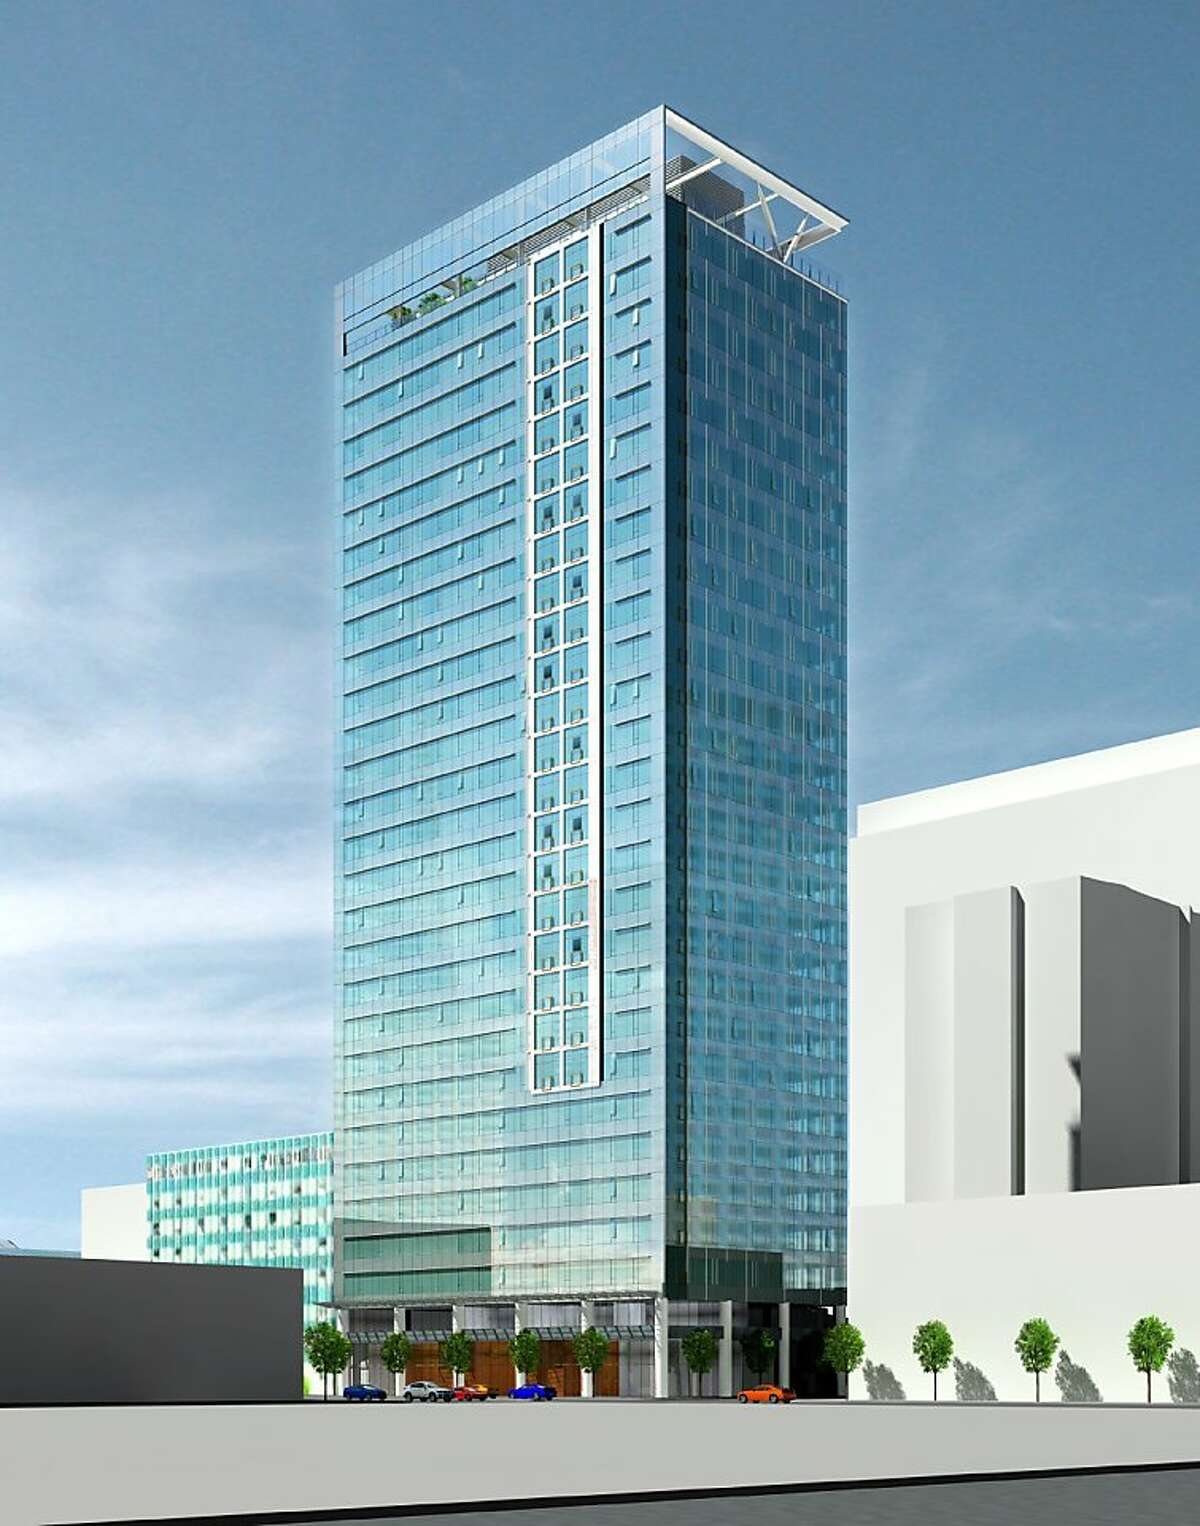 Developers have proposed to strip the concrete skin off a 1972 tower at 100 Van Ness and install a new glass exterior instead. The architect is Solomon Cordwell Buenz.